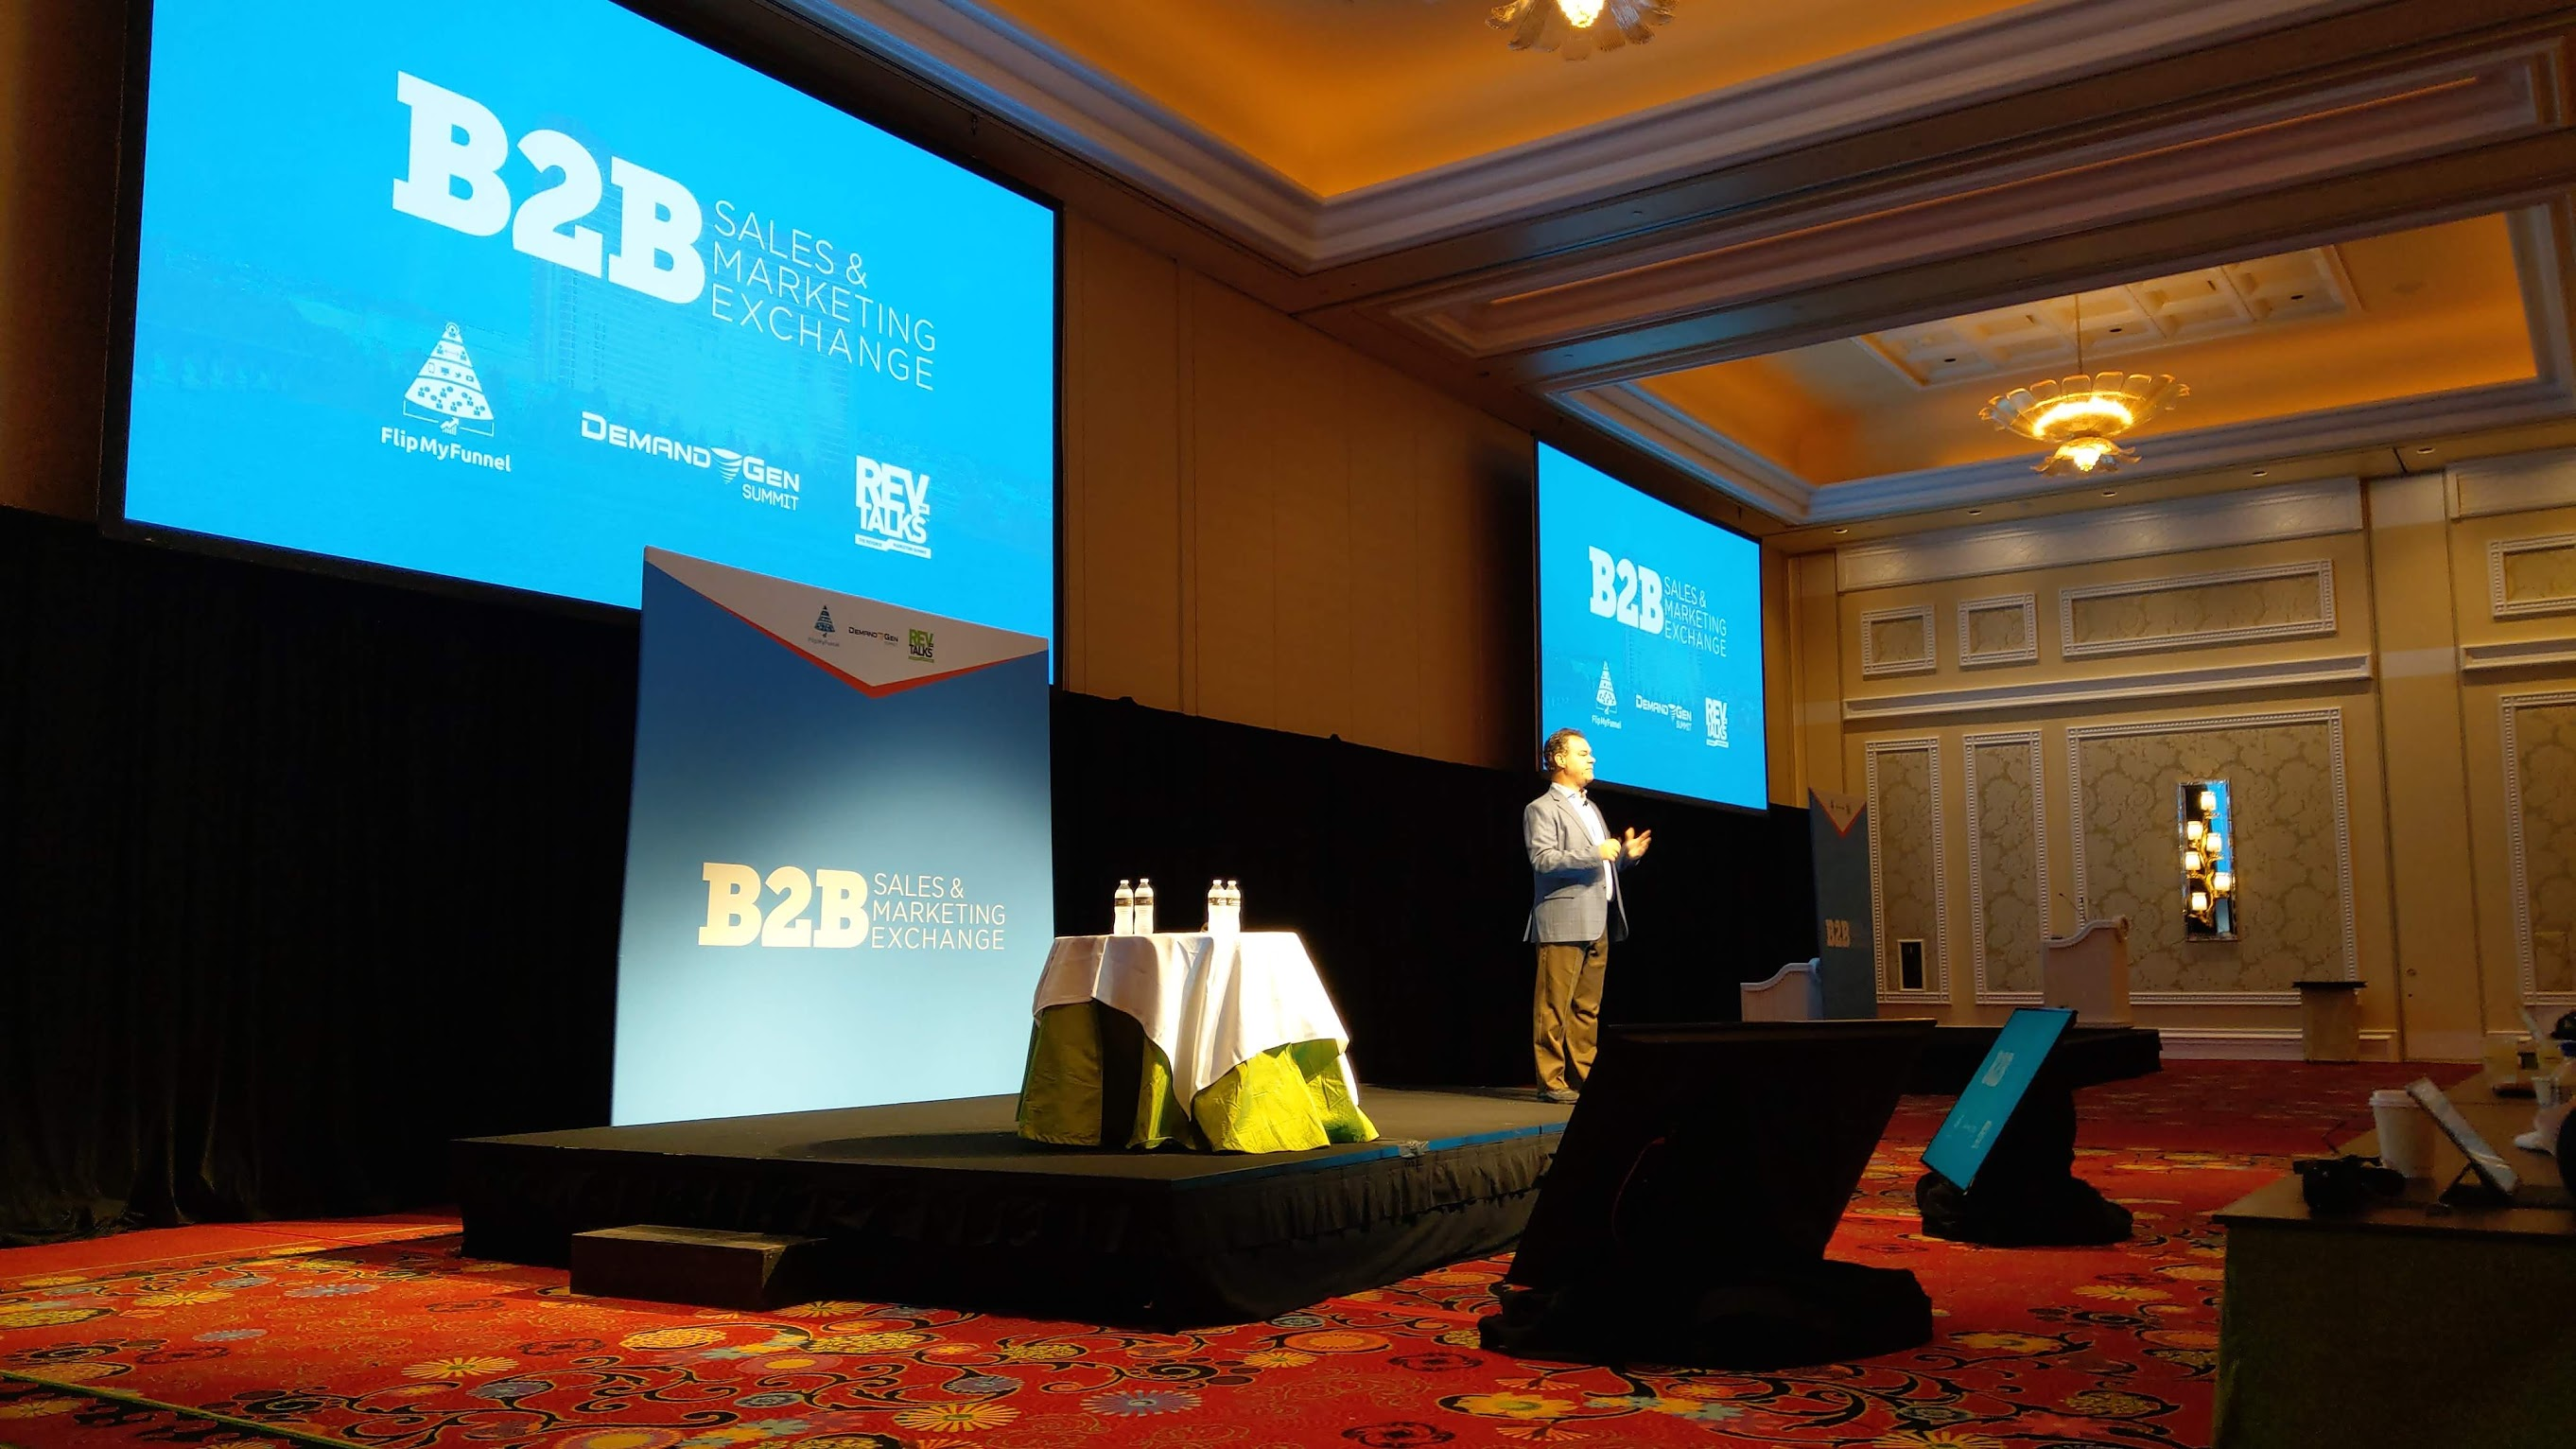 B2B Sales & Marketing Exchange (#B2BSMX2019) イベントレポート(重点速報)